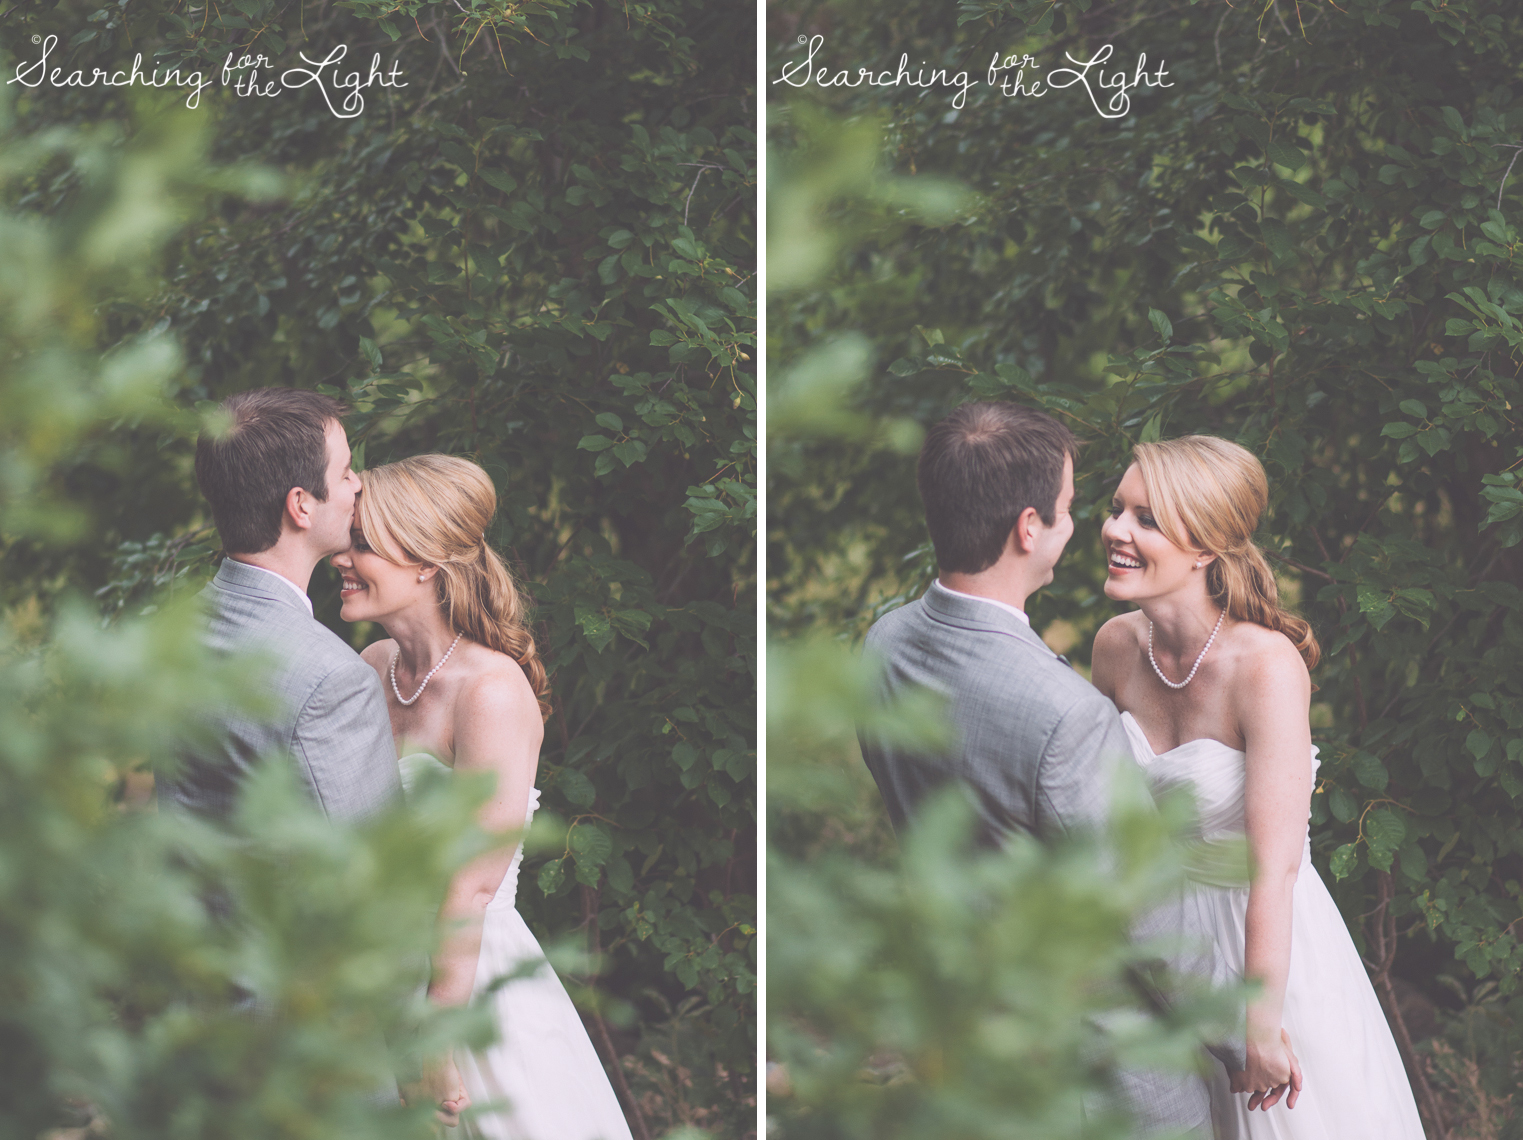 Making your first look wonderful: How to make your first look at your wedding turn out beautifully, Wedding Tips from Denver Wedding Photographer featuring first look photos